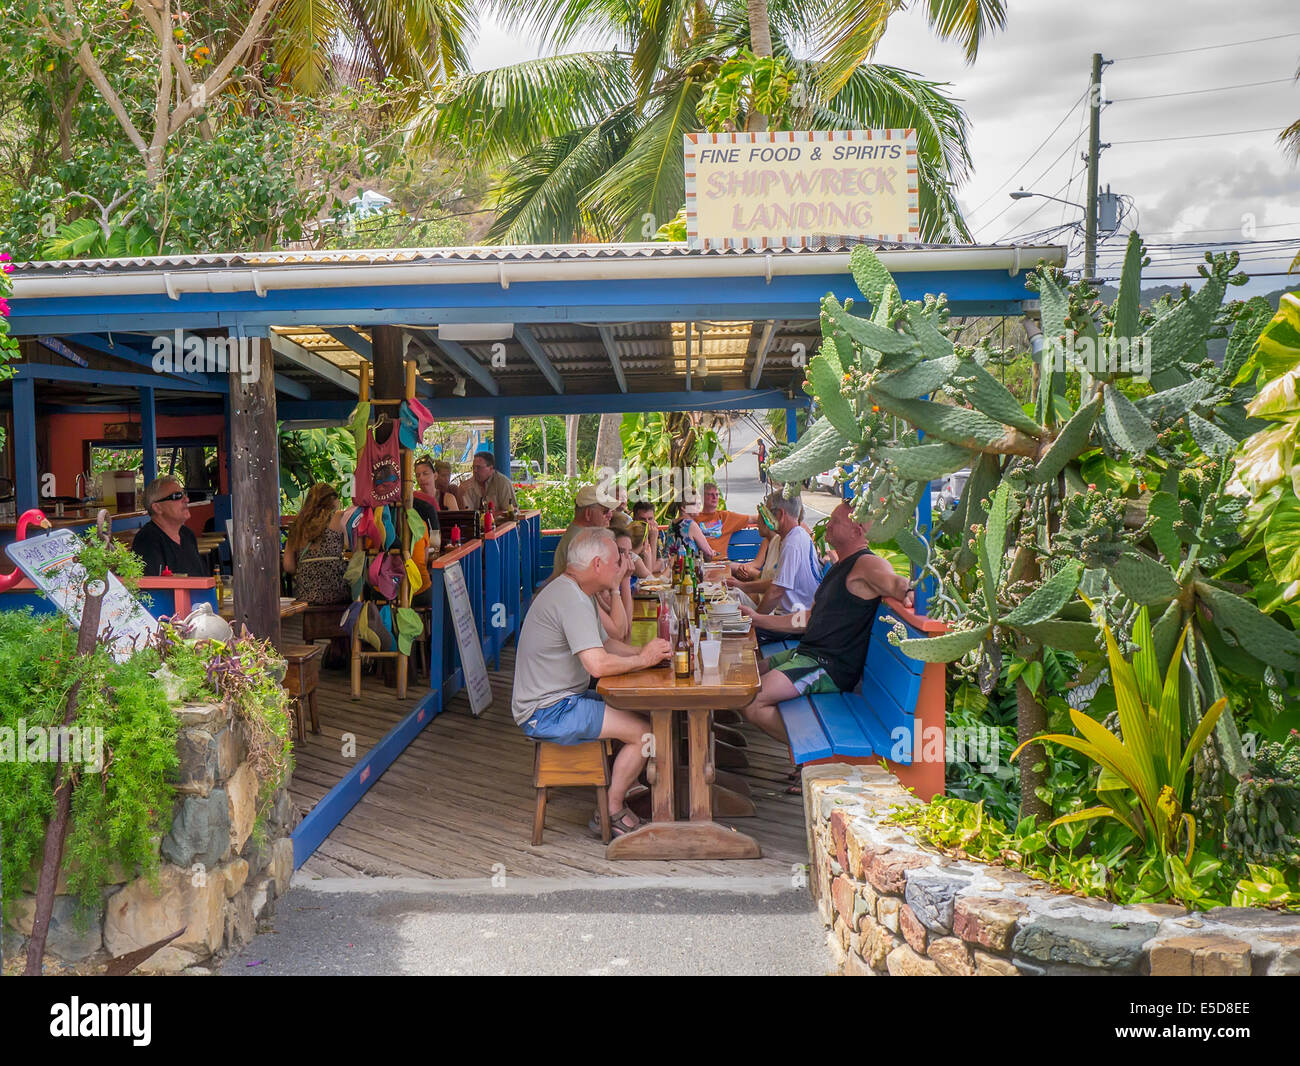 Shipwreck Landing Restaurant in Coral Bay on the Caribbean island of St John in the US Virgin Islands - Stock Image